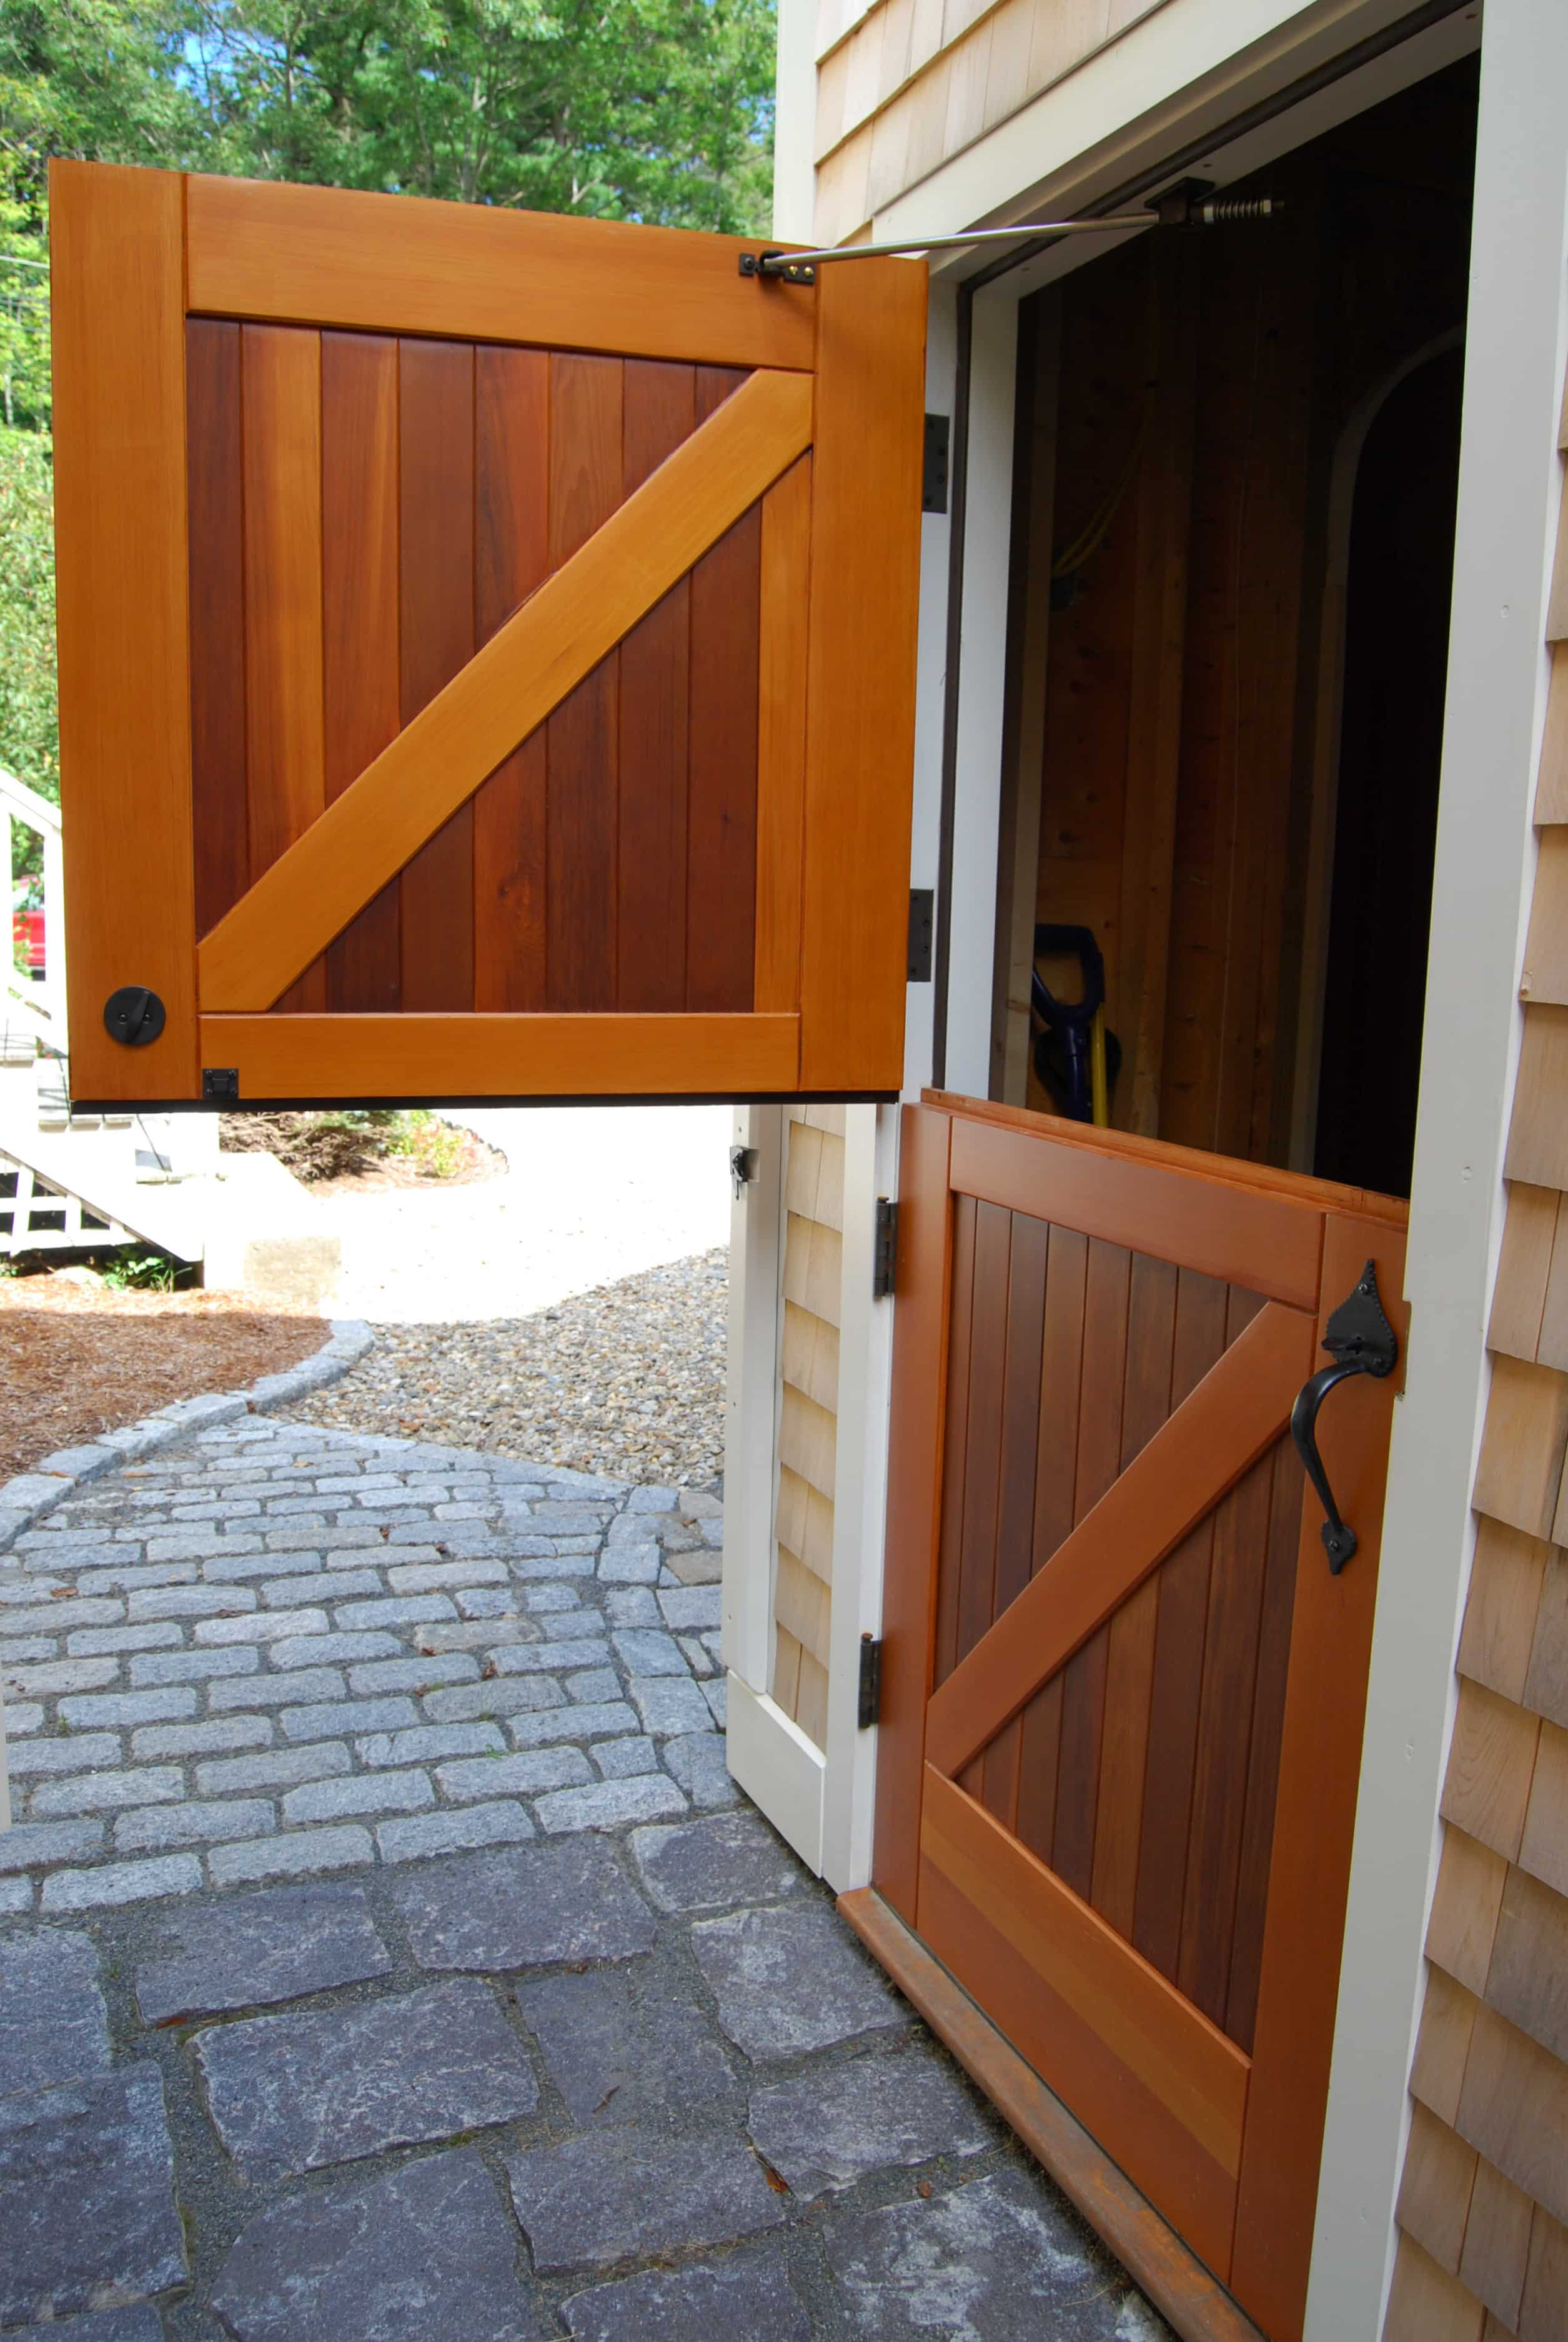 32. Opened Dutch Door